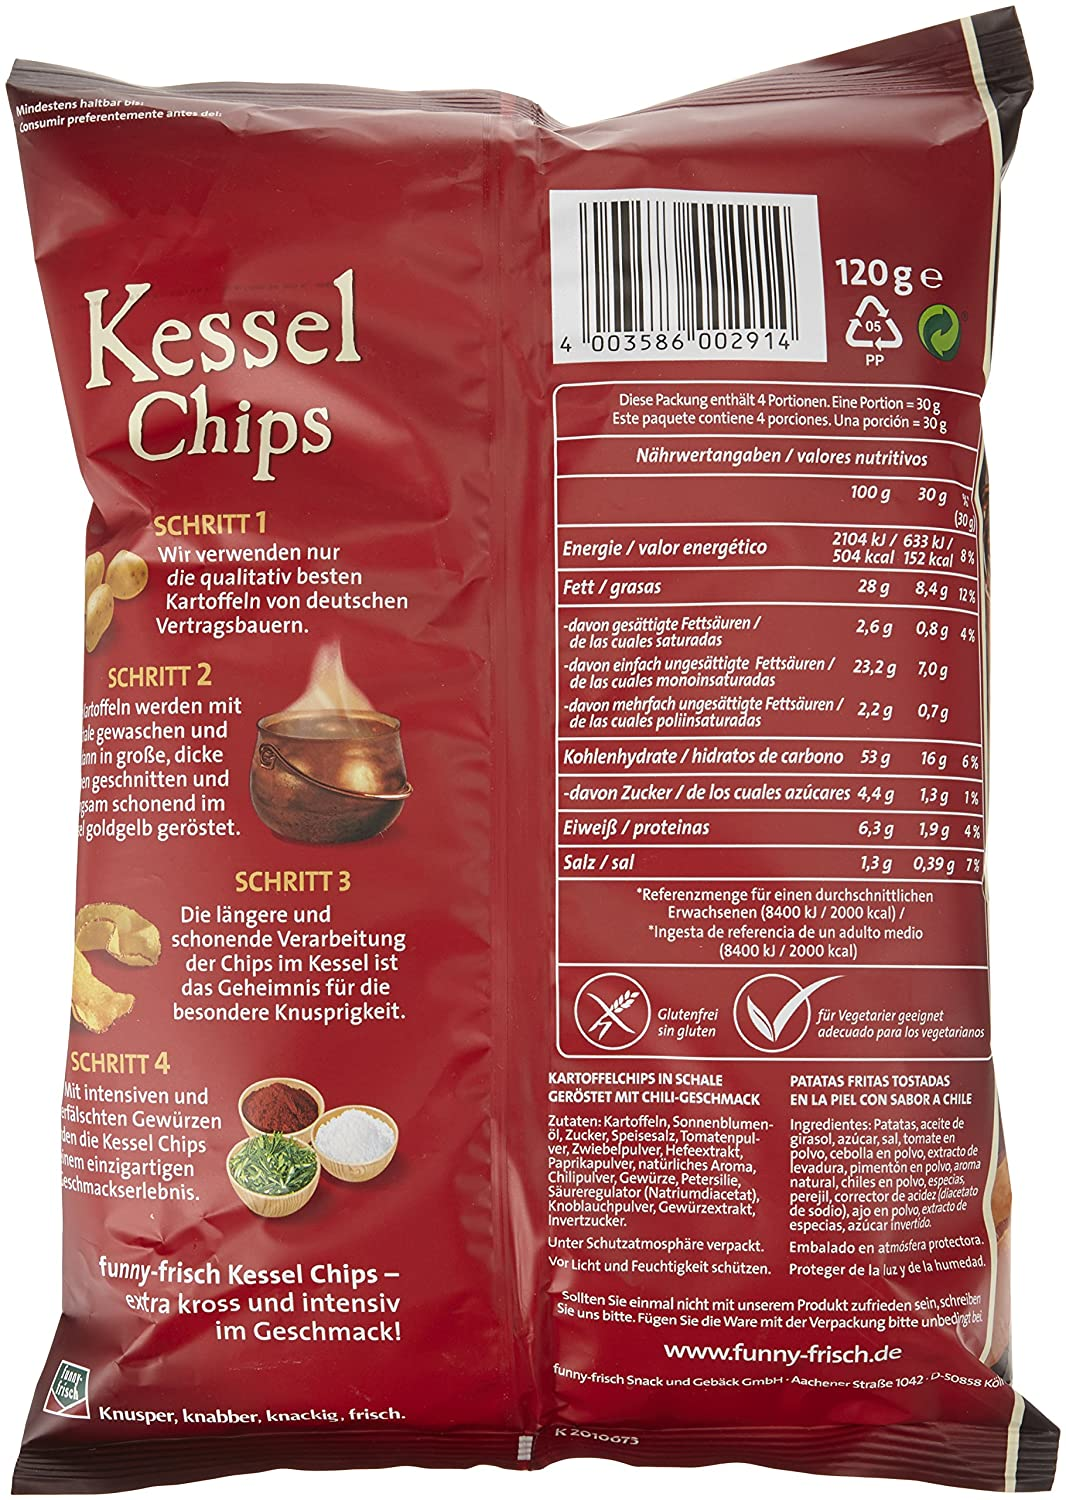 funny-frisch Kessel Chips Sweet Chili & Red Pepper, 120 g: Amazon.de ...